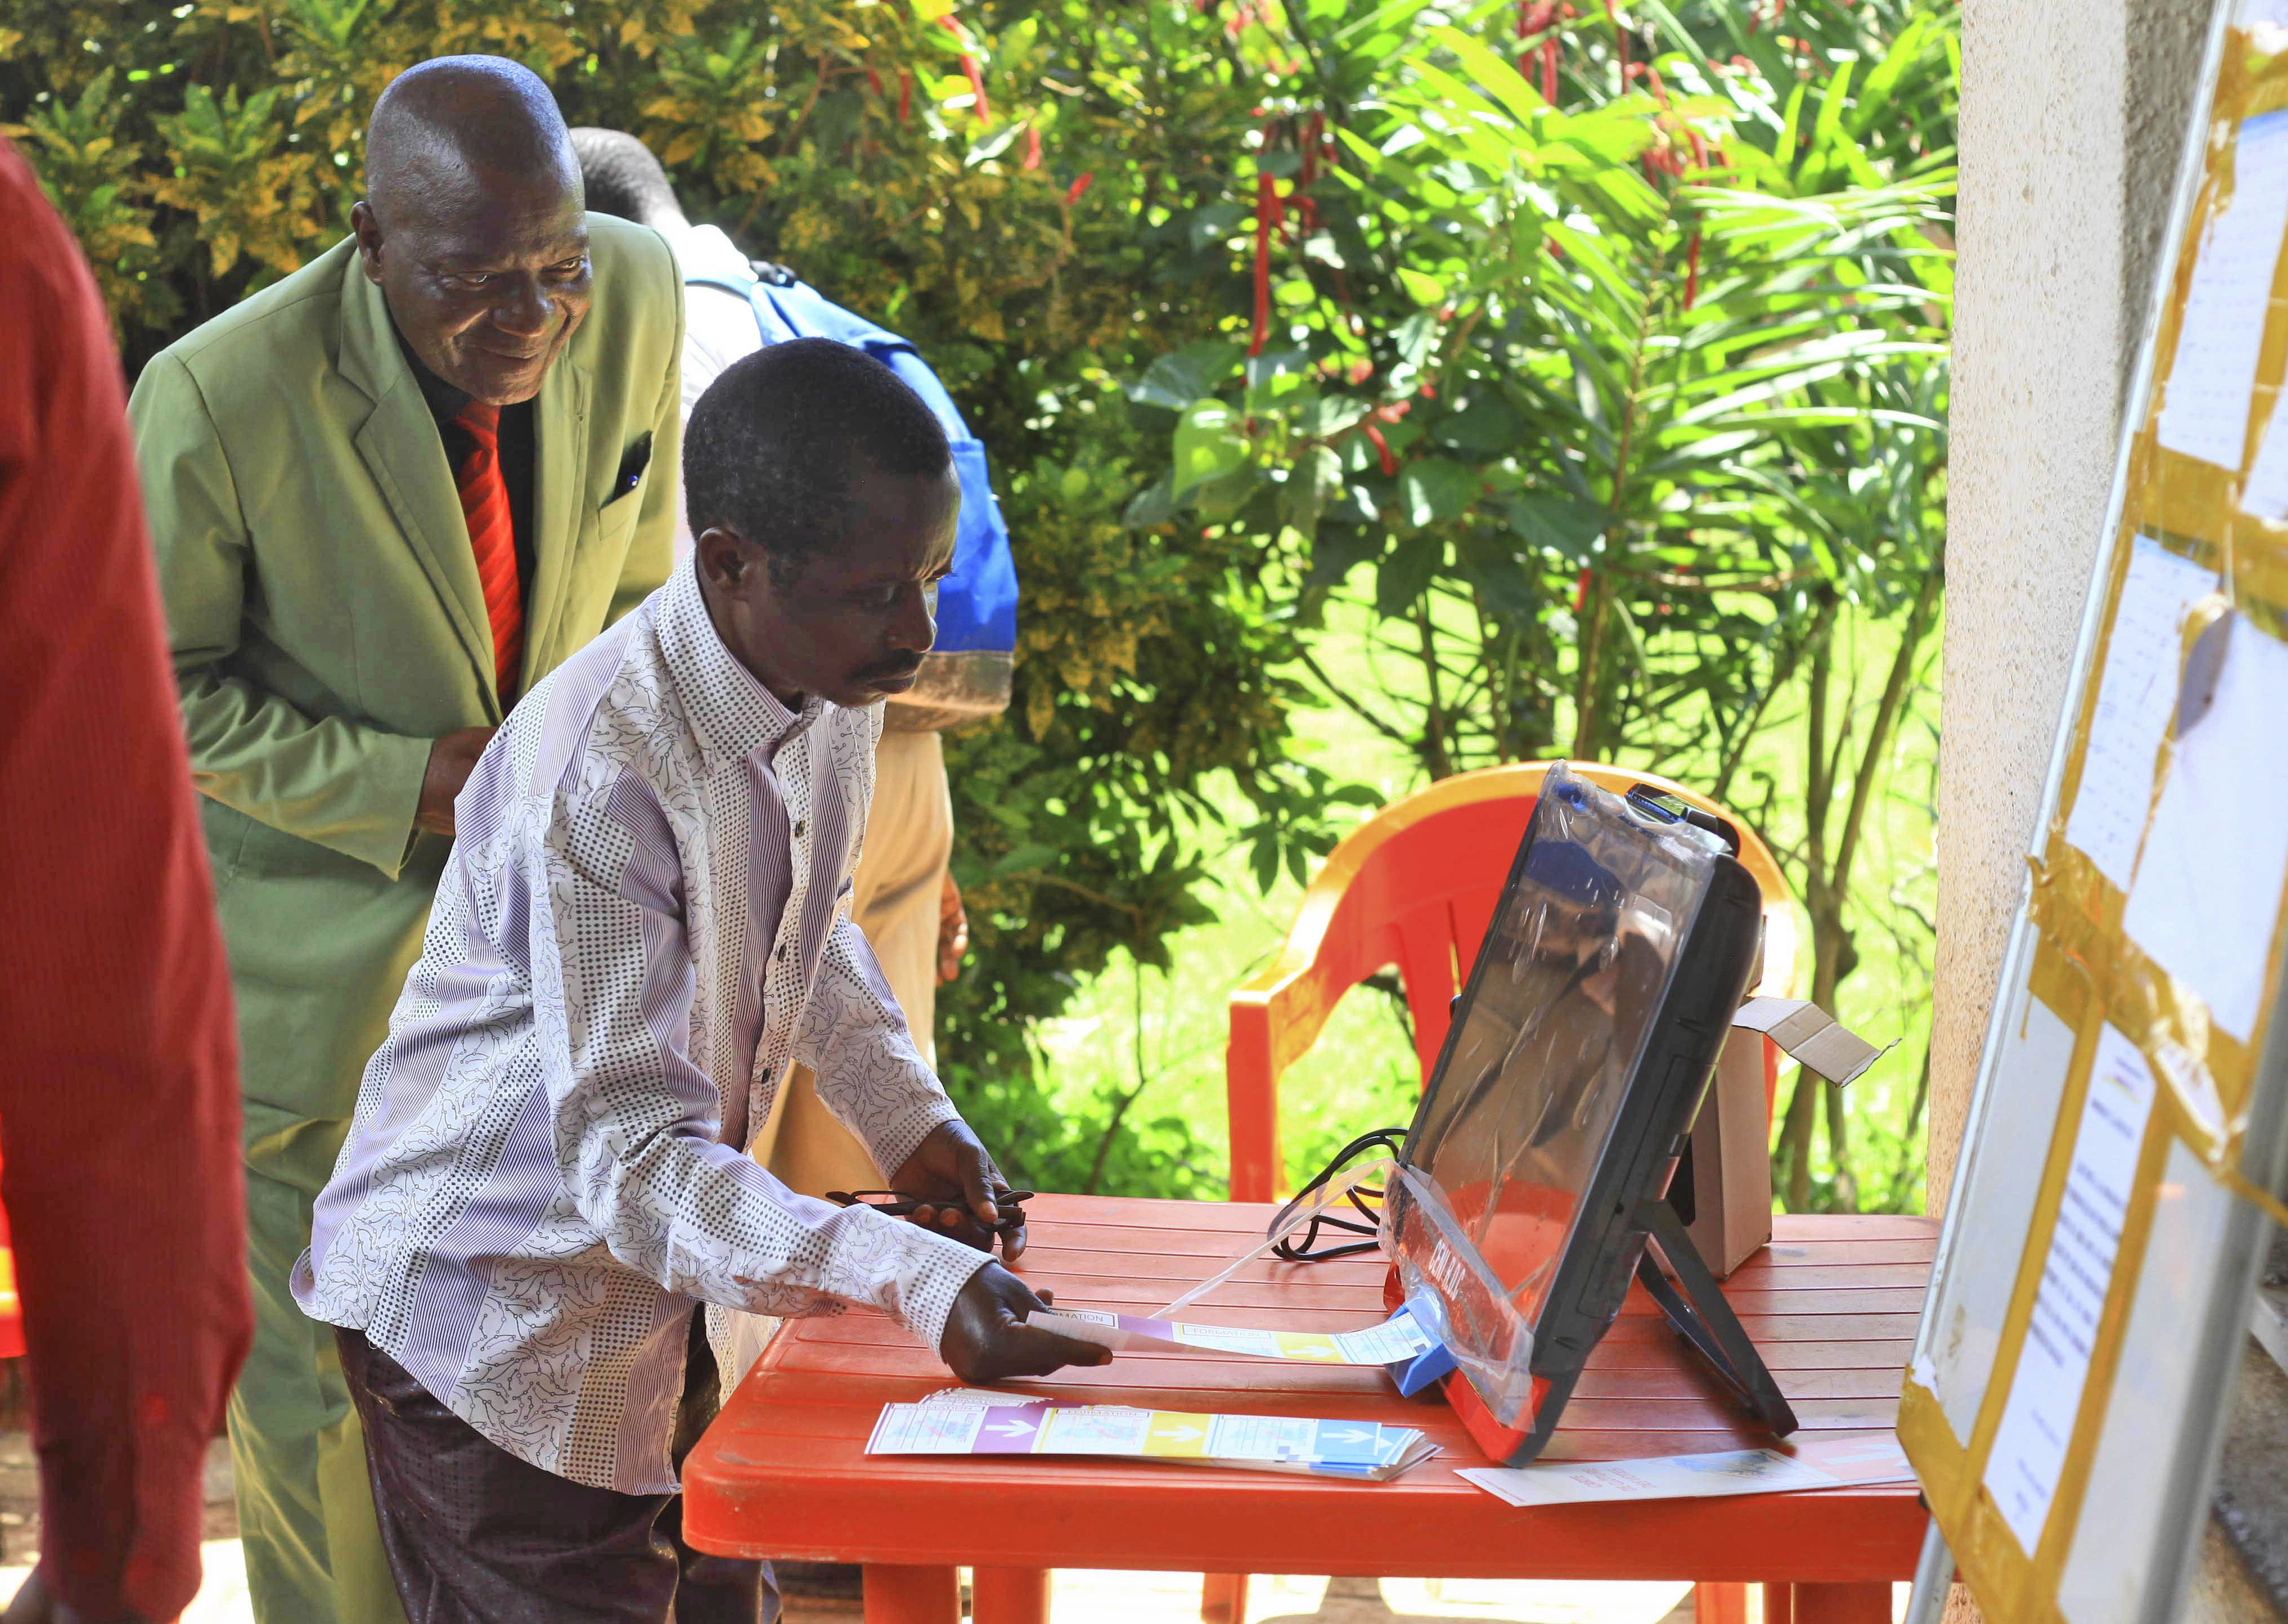 In this photo taken Oct. 16, 2018, a man demonstrates using an electronic voting machine that will be used later in the year for the next election in Beni, Eastern Congo.